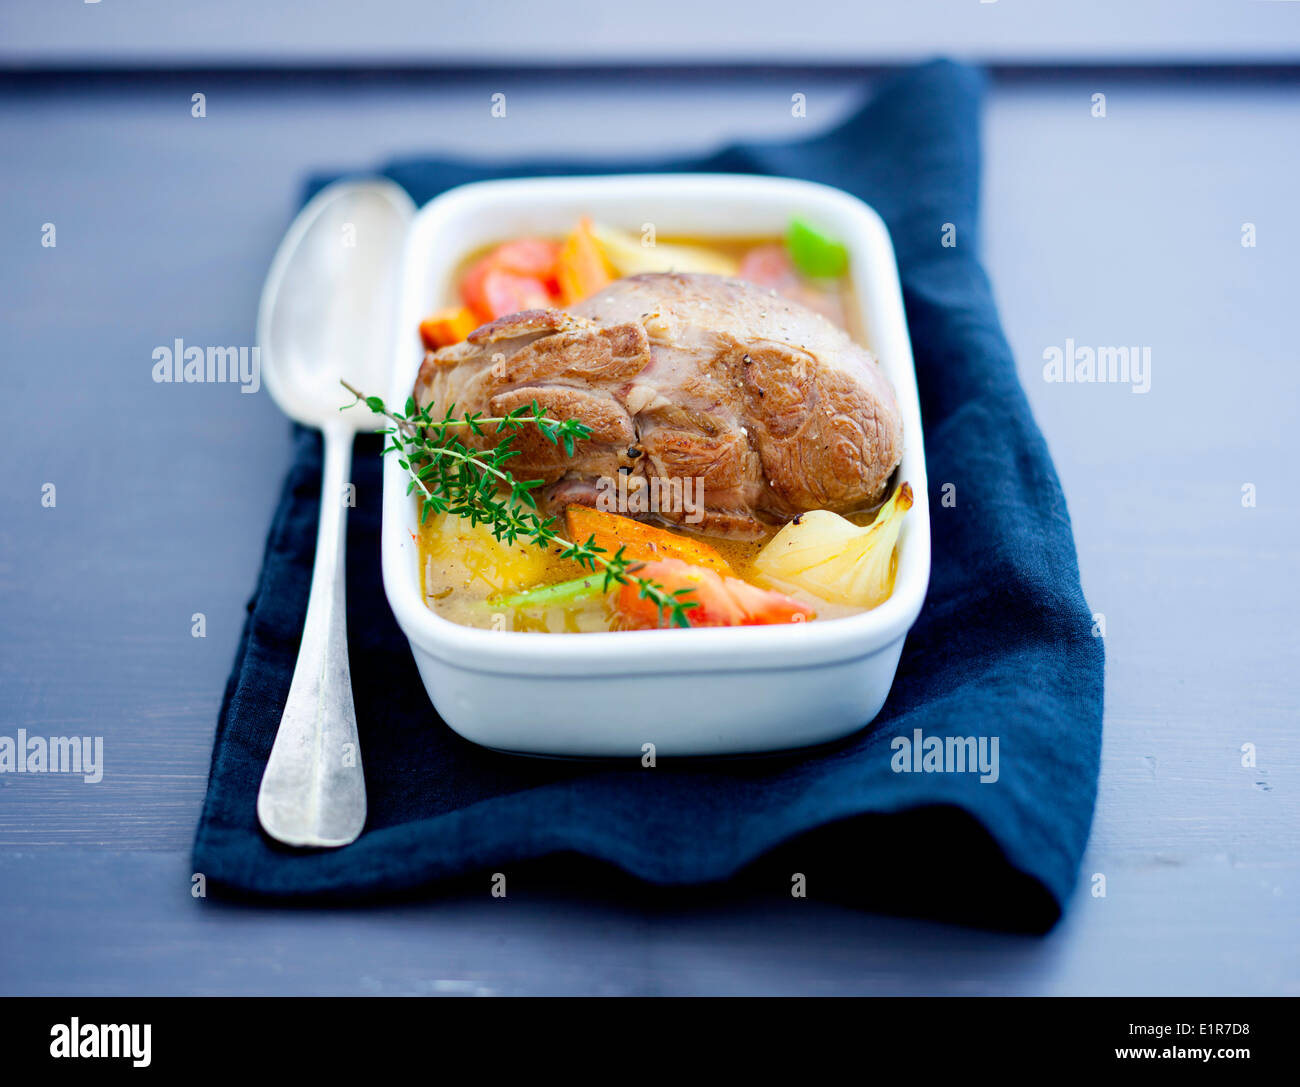 Leg of lamb with vegetables Stock Photo